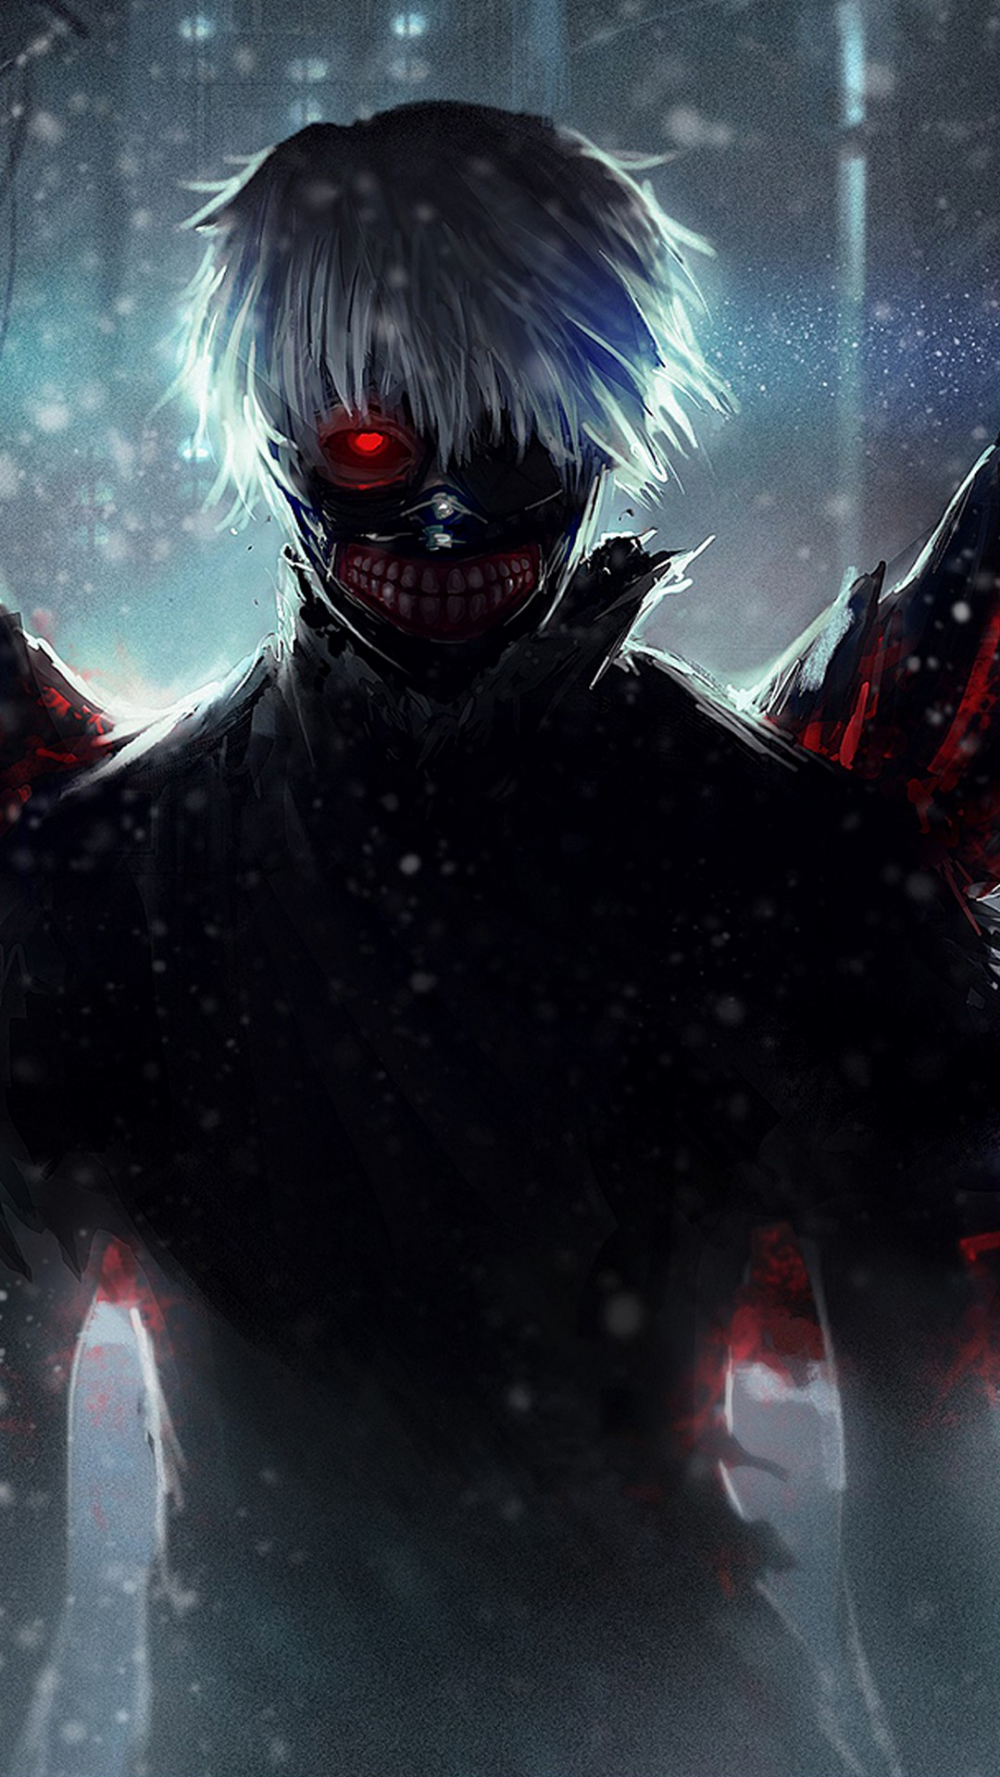 Anime Iphone 6 Wallpaper In 2020 Tokyo Ghoul Cosplay Tokyo Ghoul Manga Tokyo Ghoul Wallpapers